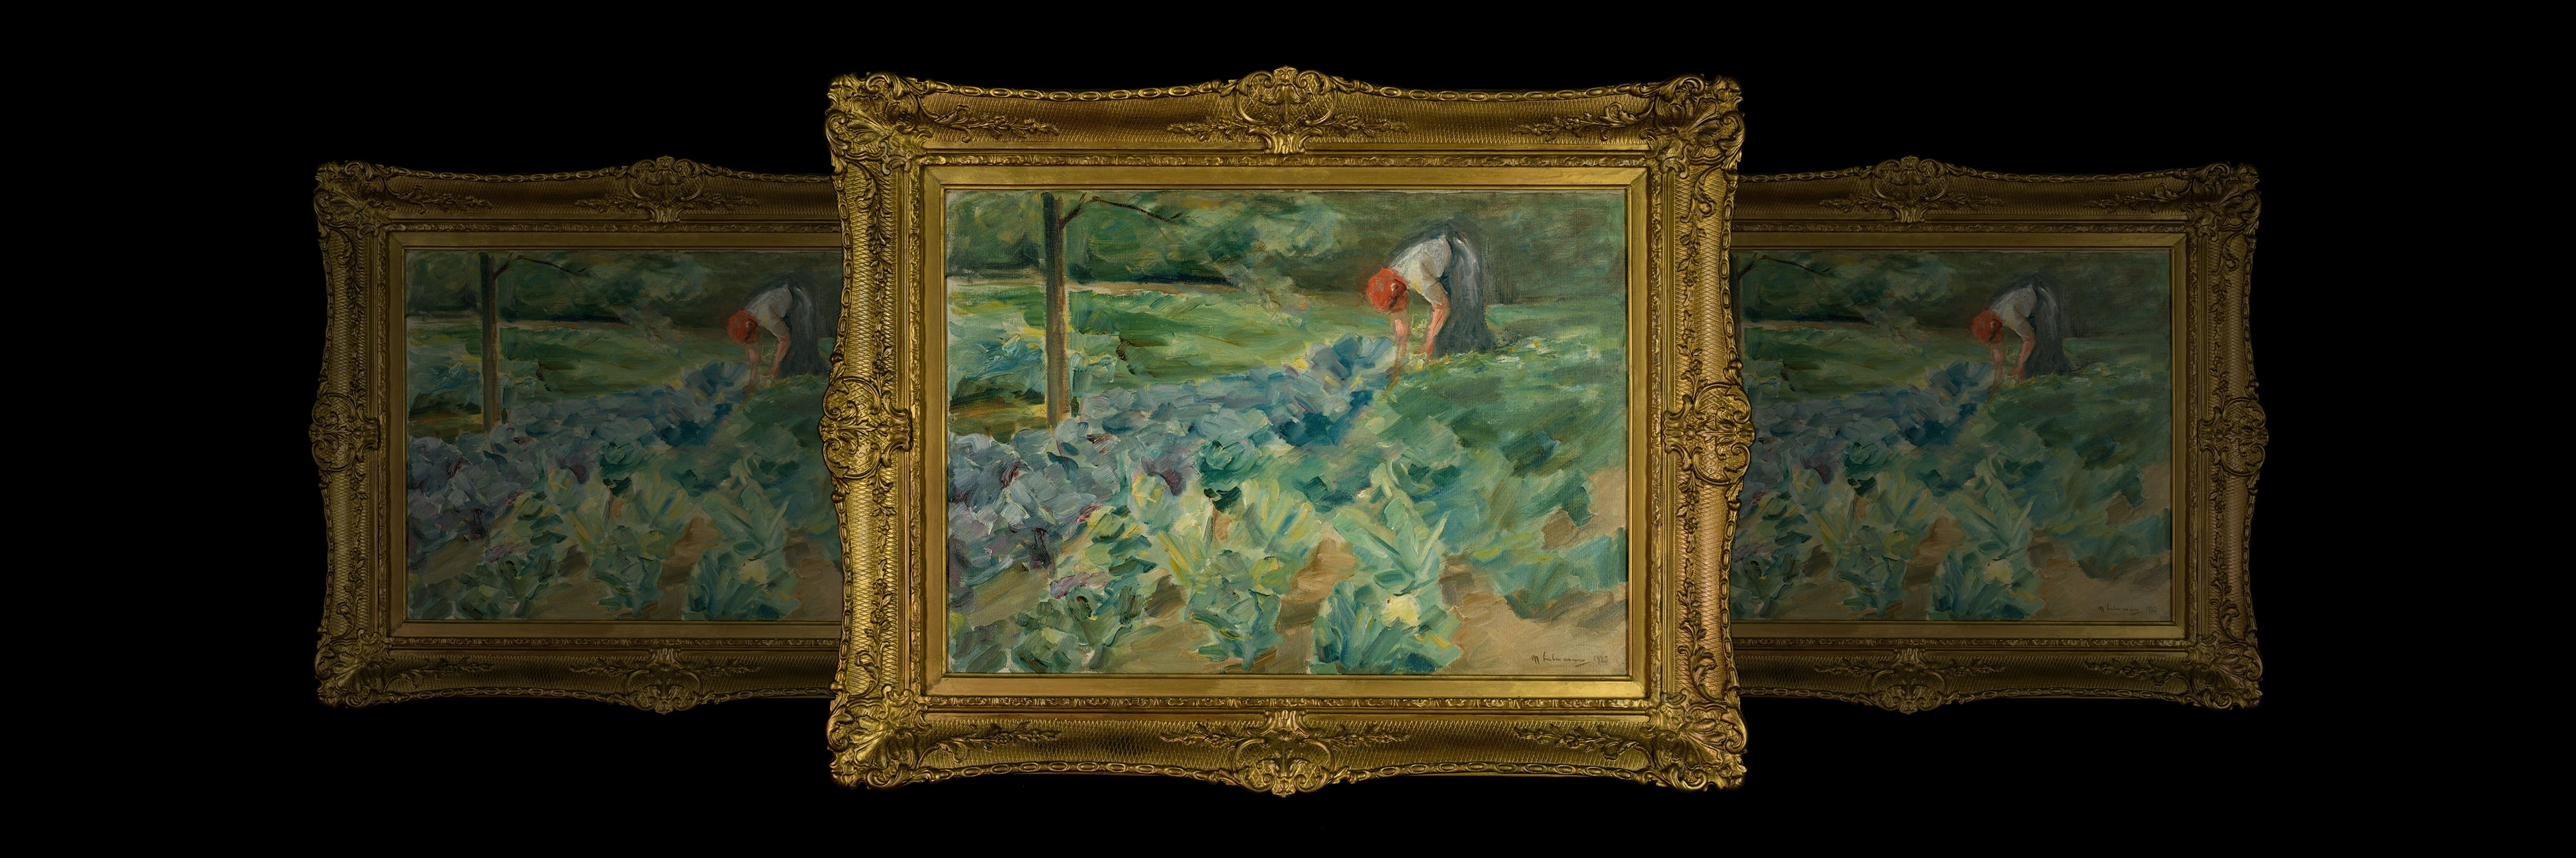 lo-77-9_liebermann_with_frame_and_extended_background_3892x1297.jpg